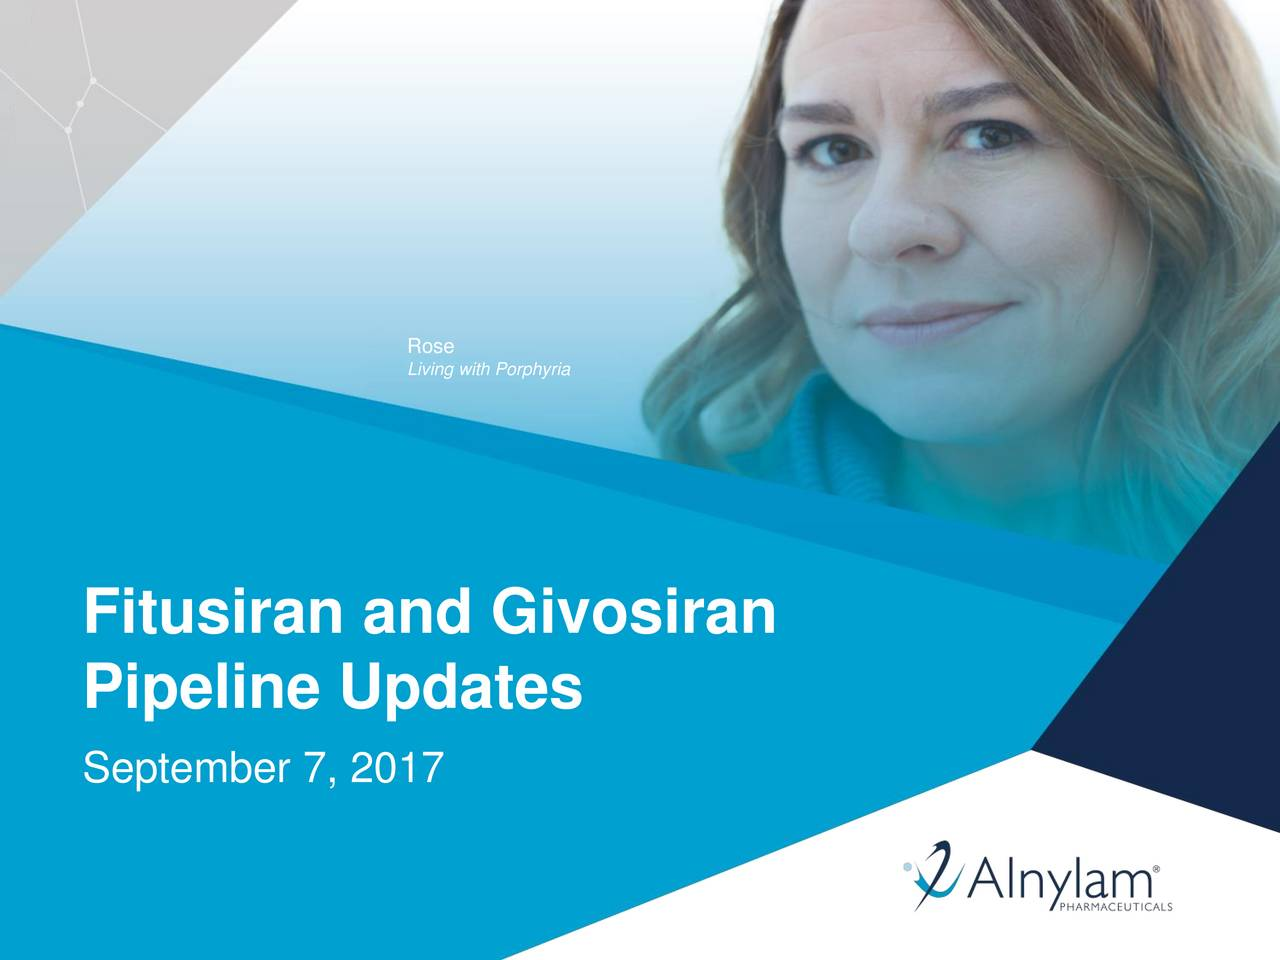 Living with Porphyria Fitusiran and Givosiran Pipeline Updates September 7, 2017